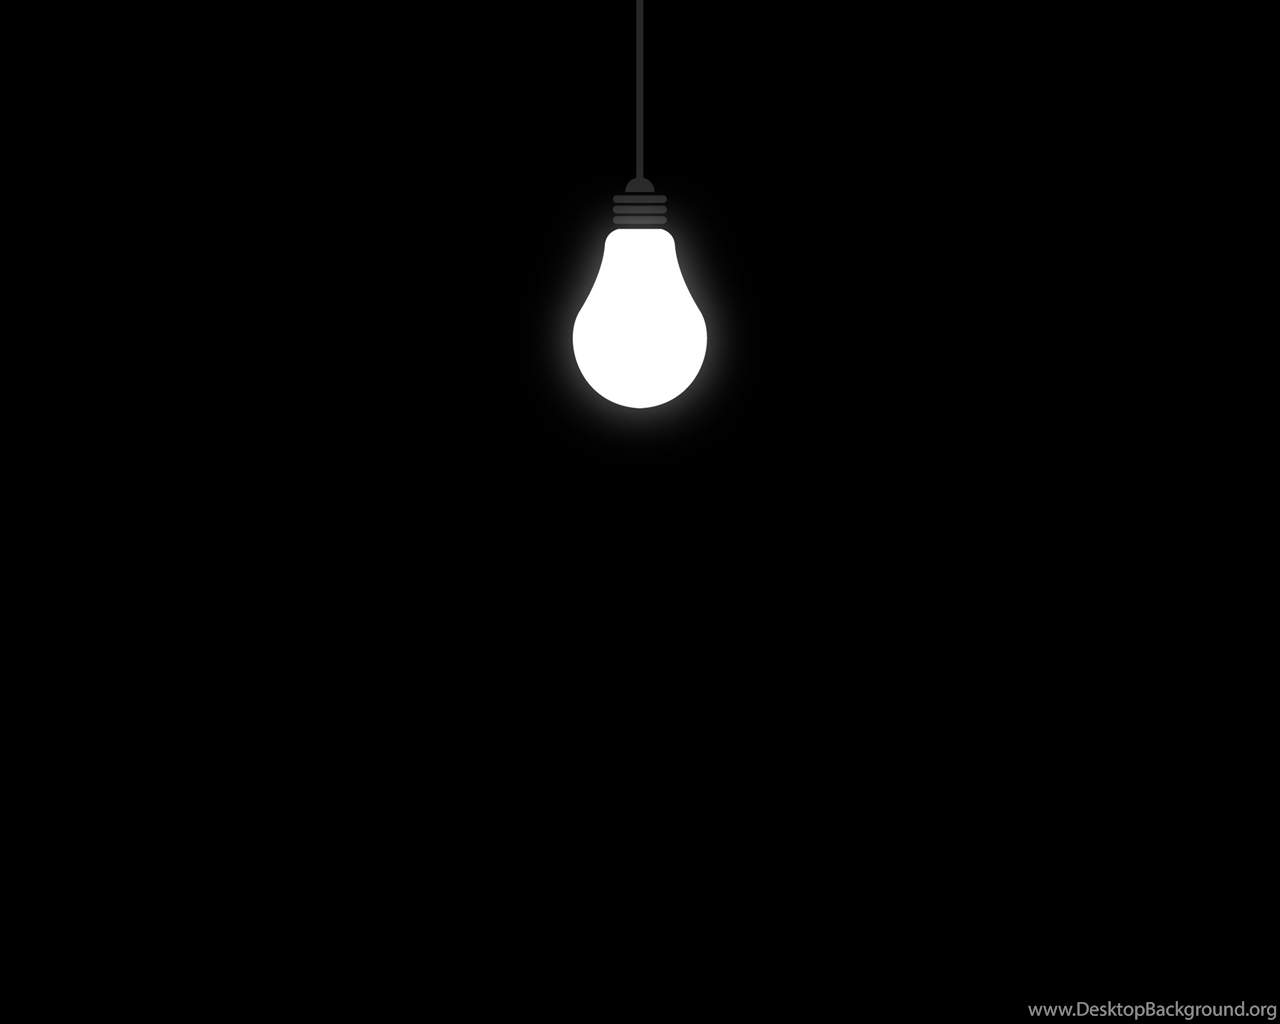 50 Black Wallpapers In Fhd For Free Download For Android Desktop